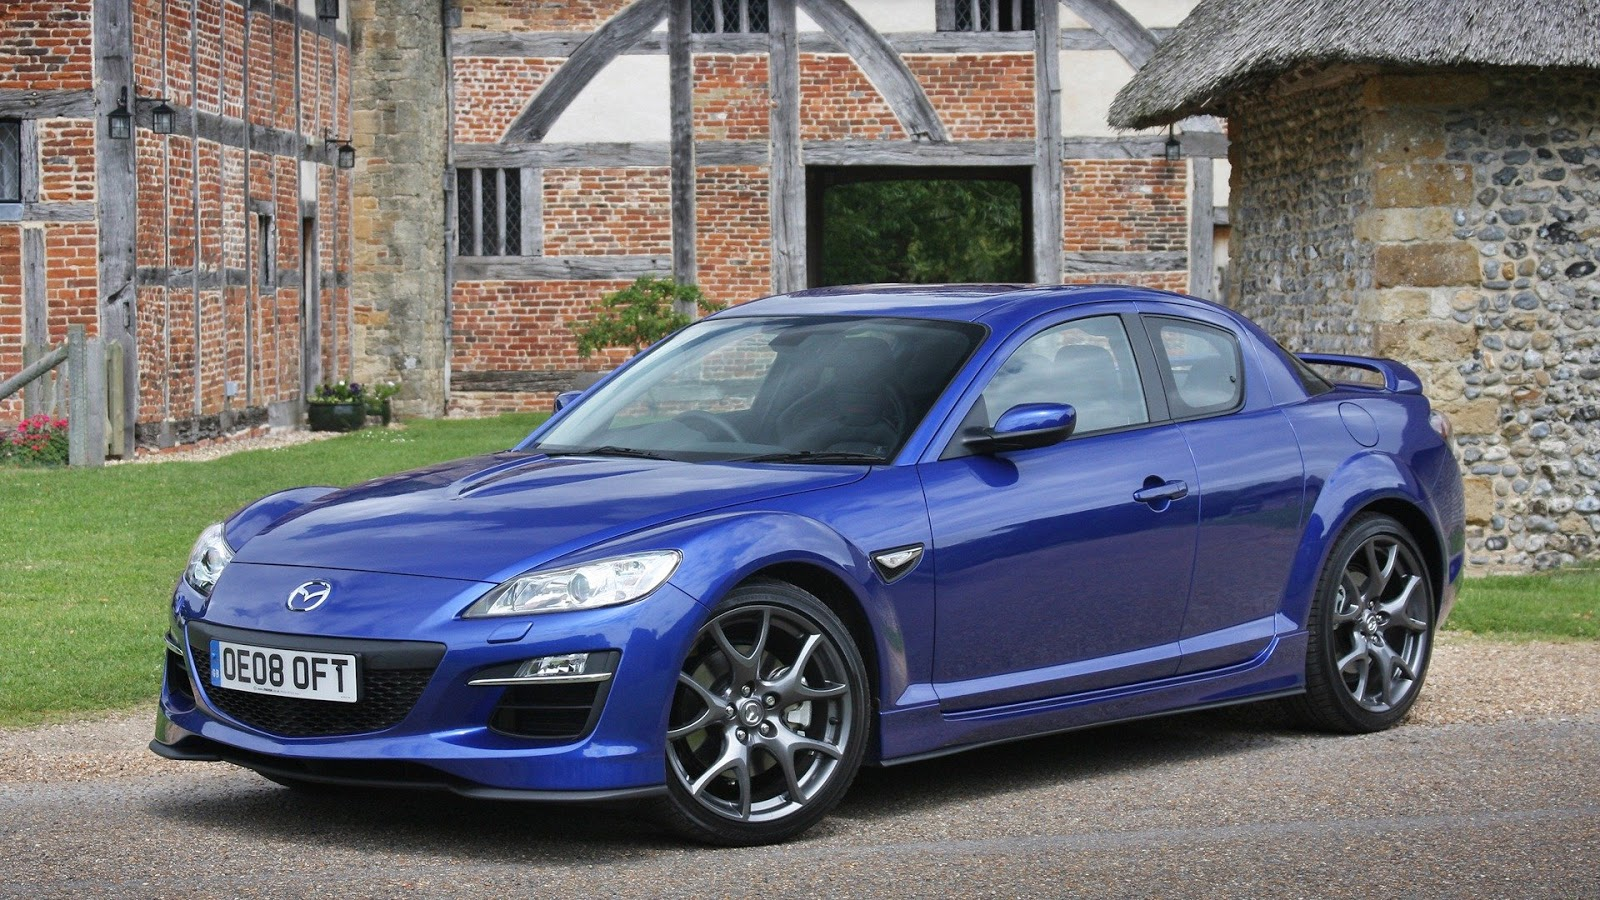 wallpapers of beautiful cars mazda rx 8. Black Bedroom Furniture Sets. Home Design Ideas